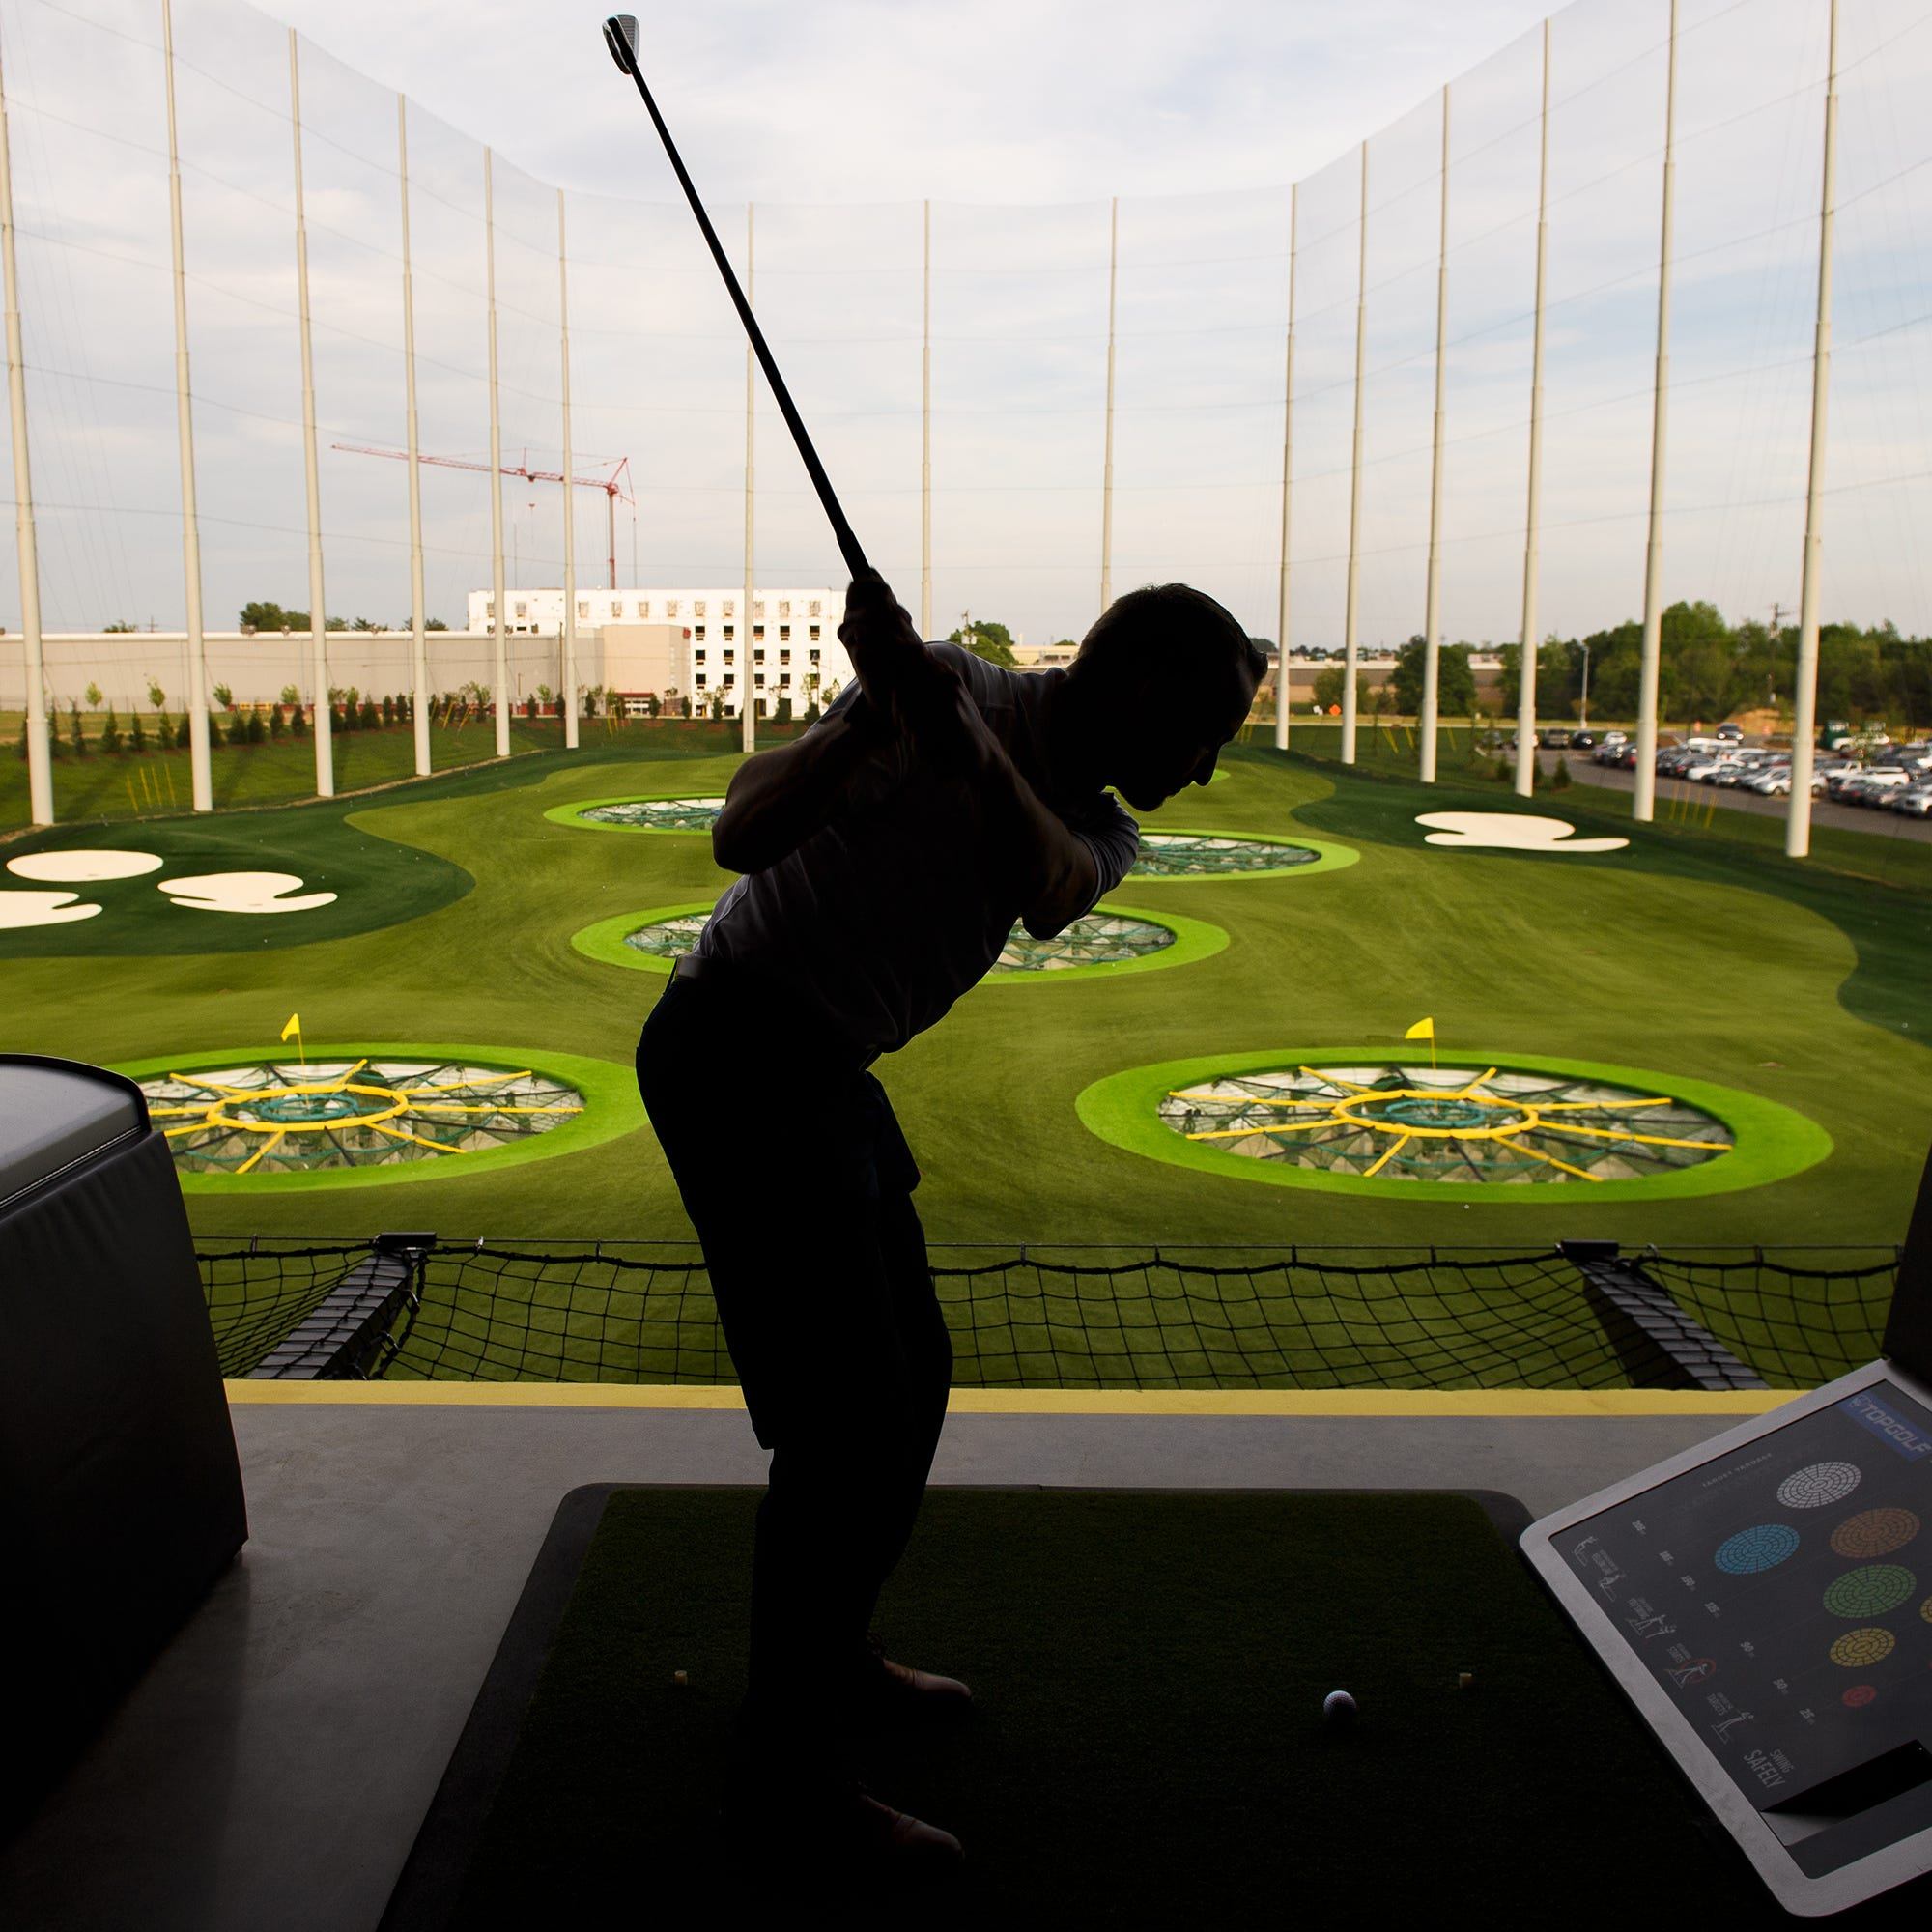 TopGolf will soon open in Greenville. Here's a sneak peek of the venue